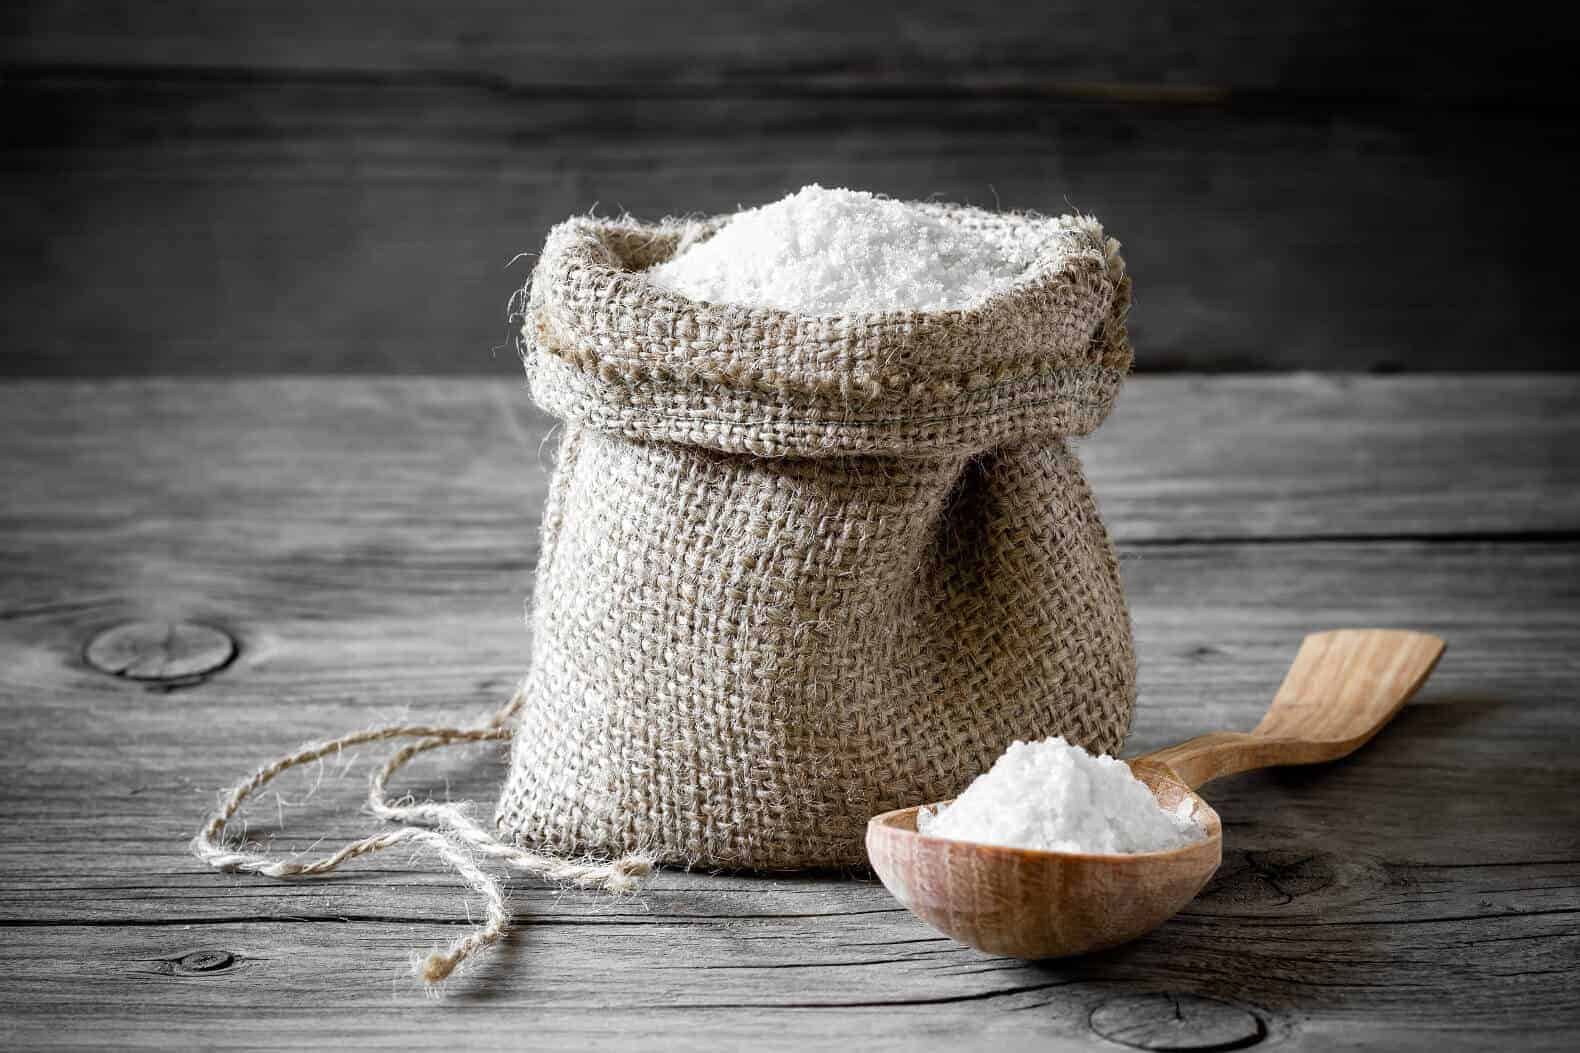 bag-of-salt